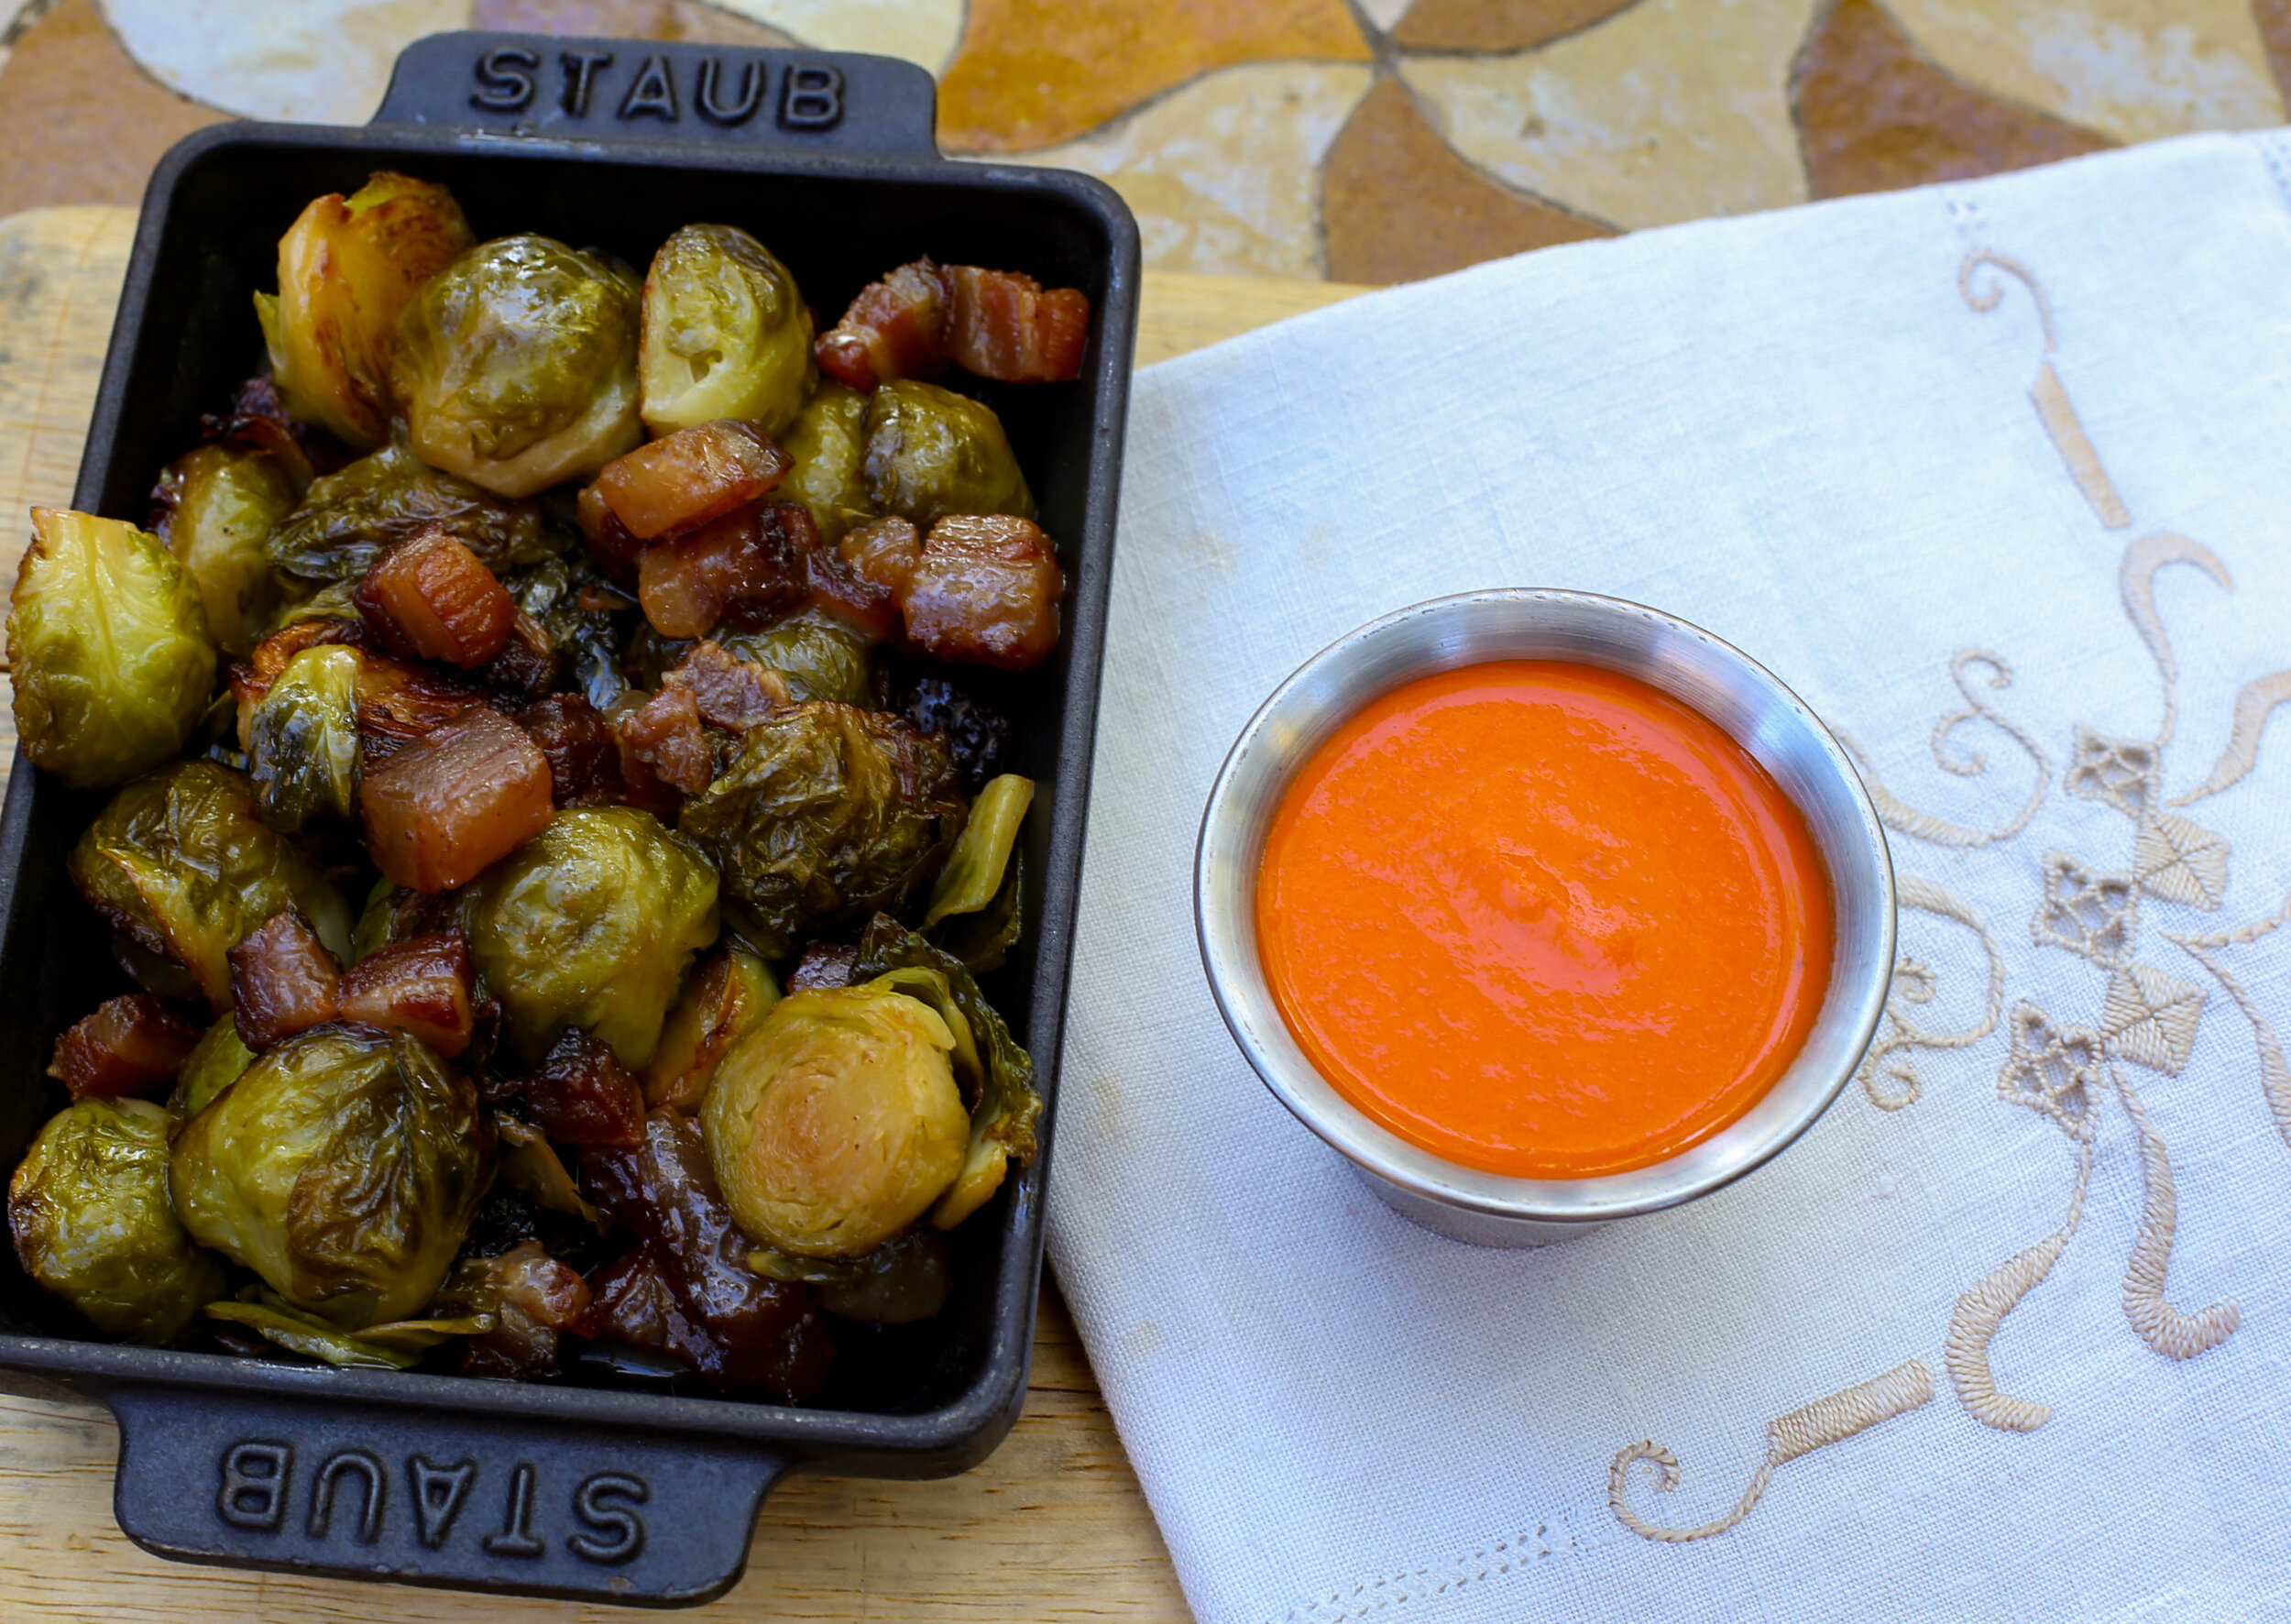 Smoked brussels sprouts, bacon lardons, piquillo dipping sauce